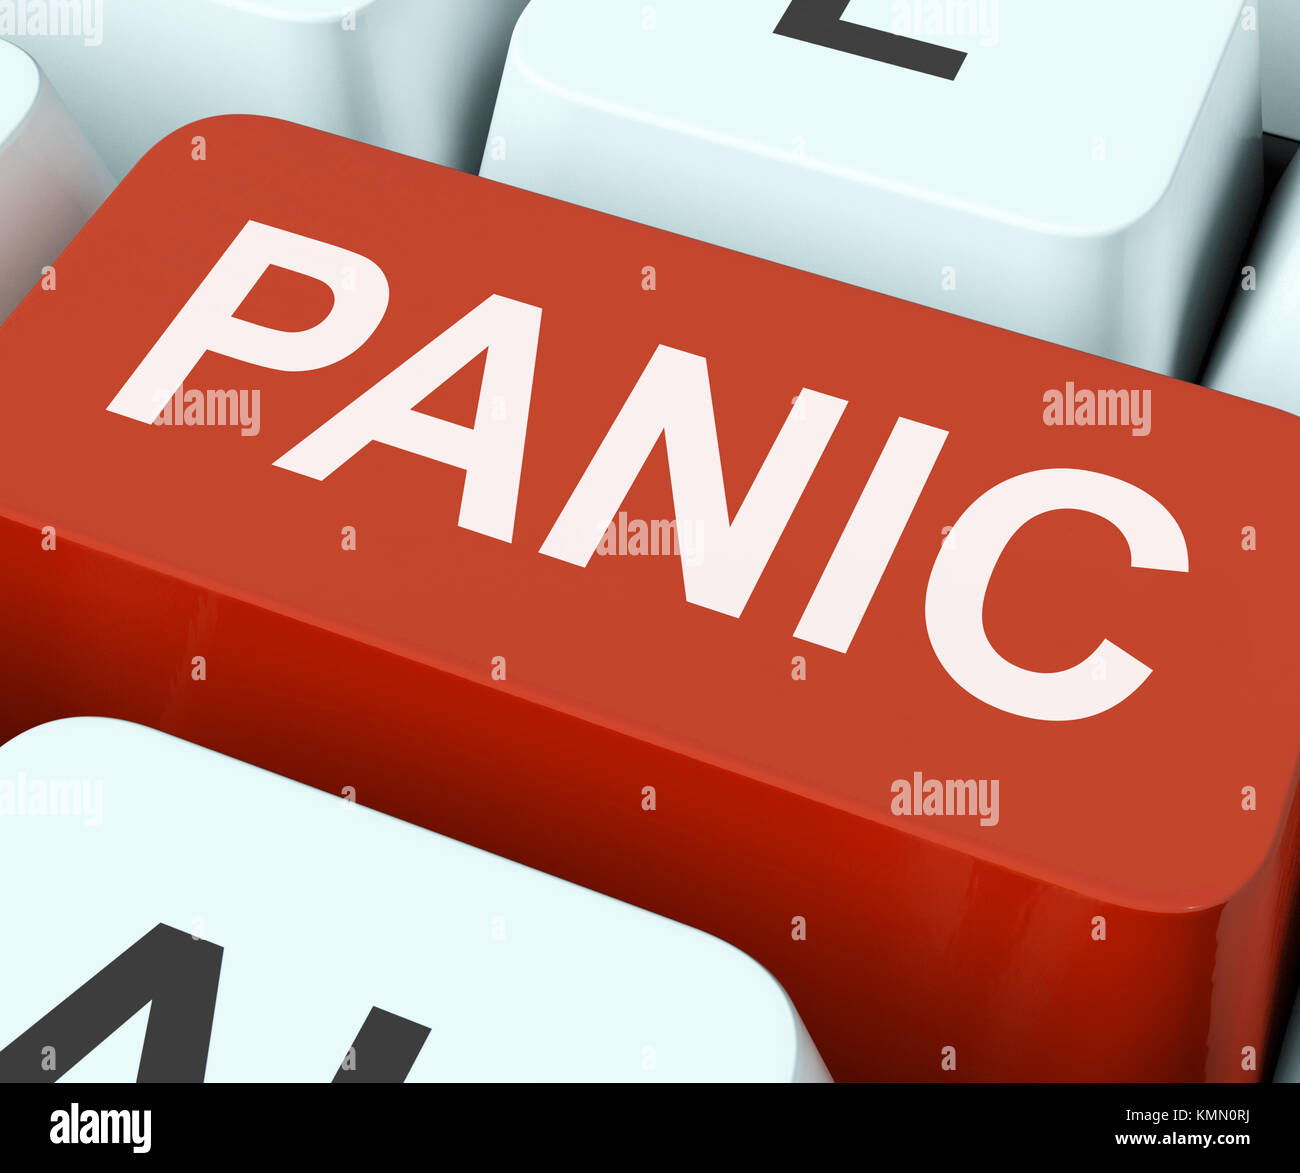 Panic Key Showing Panicky Terror Or Distress Stock Photo